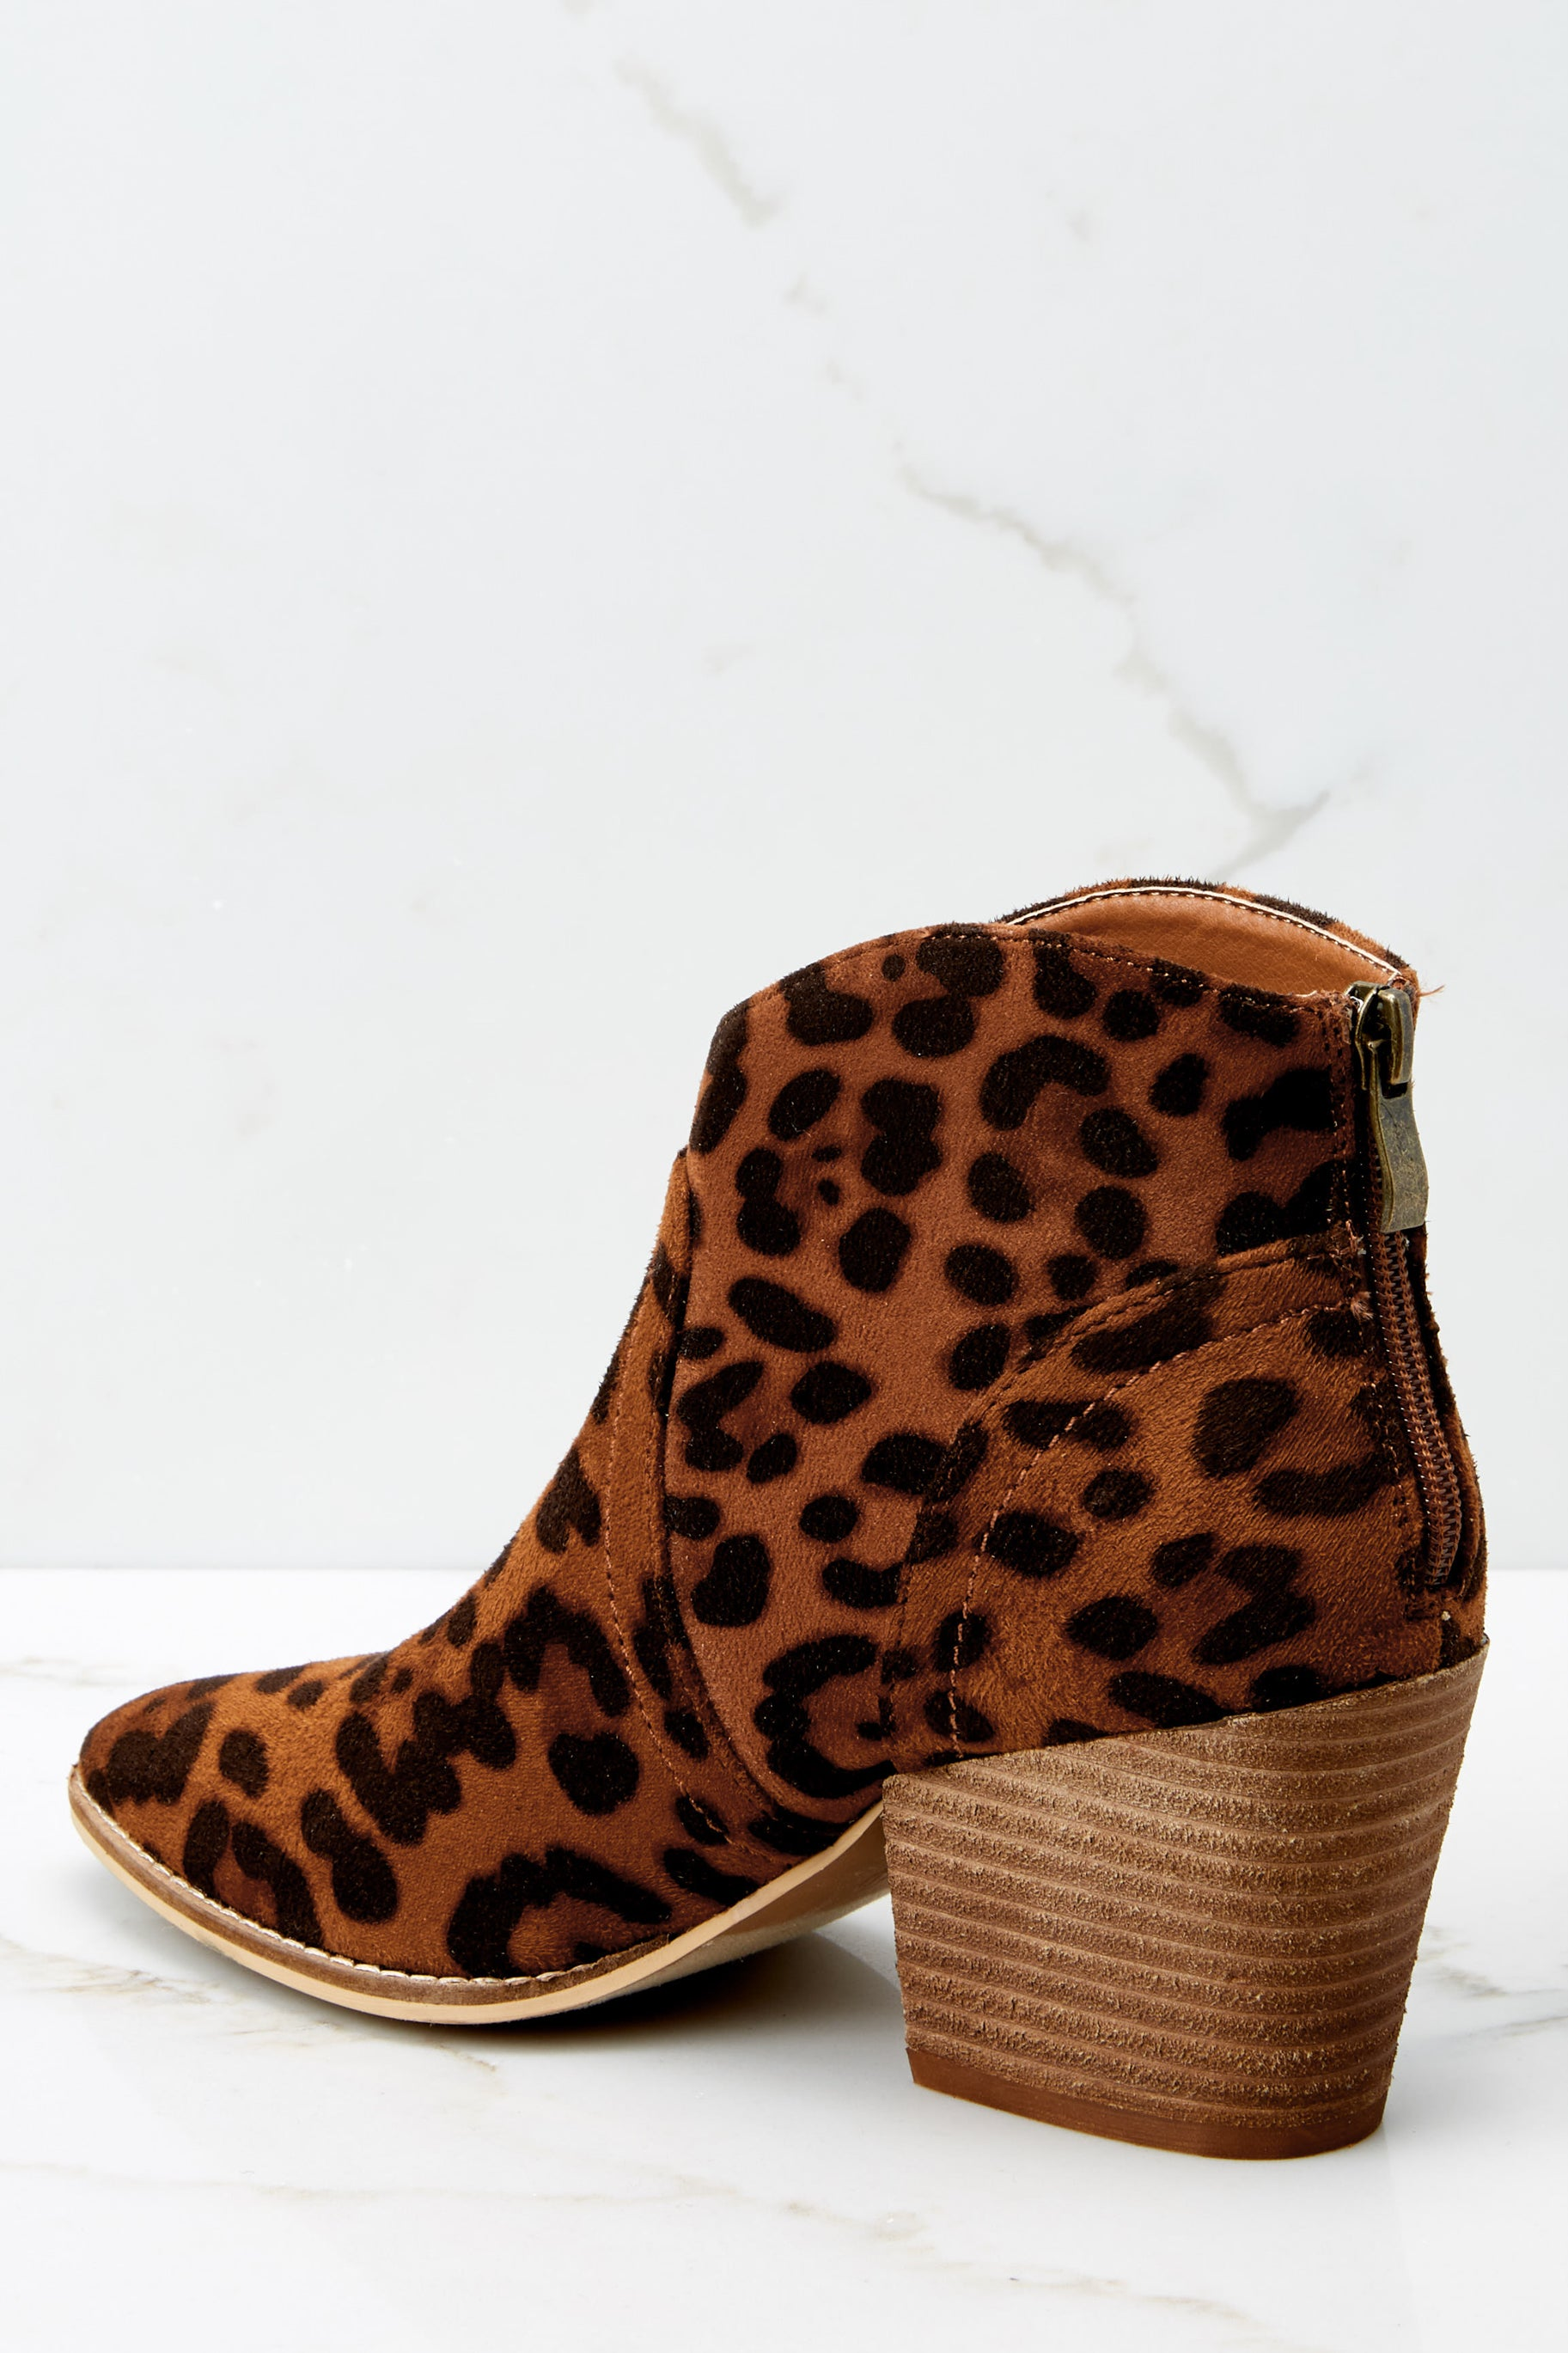 4 Well Played Leopard Ankle Booties at reddress.com